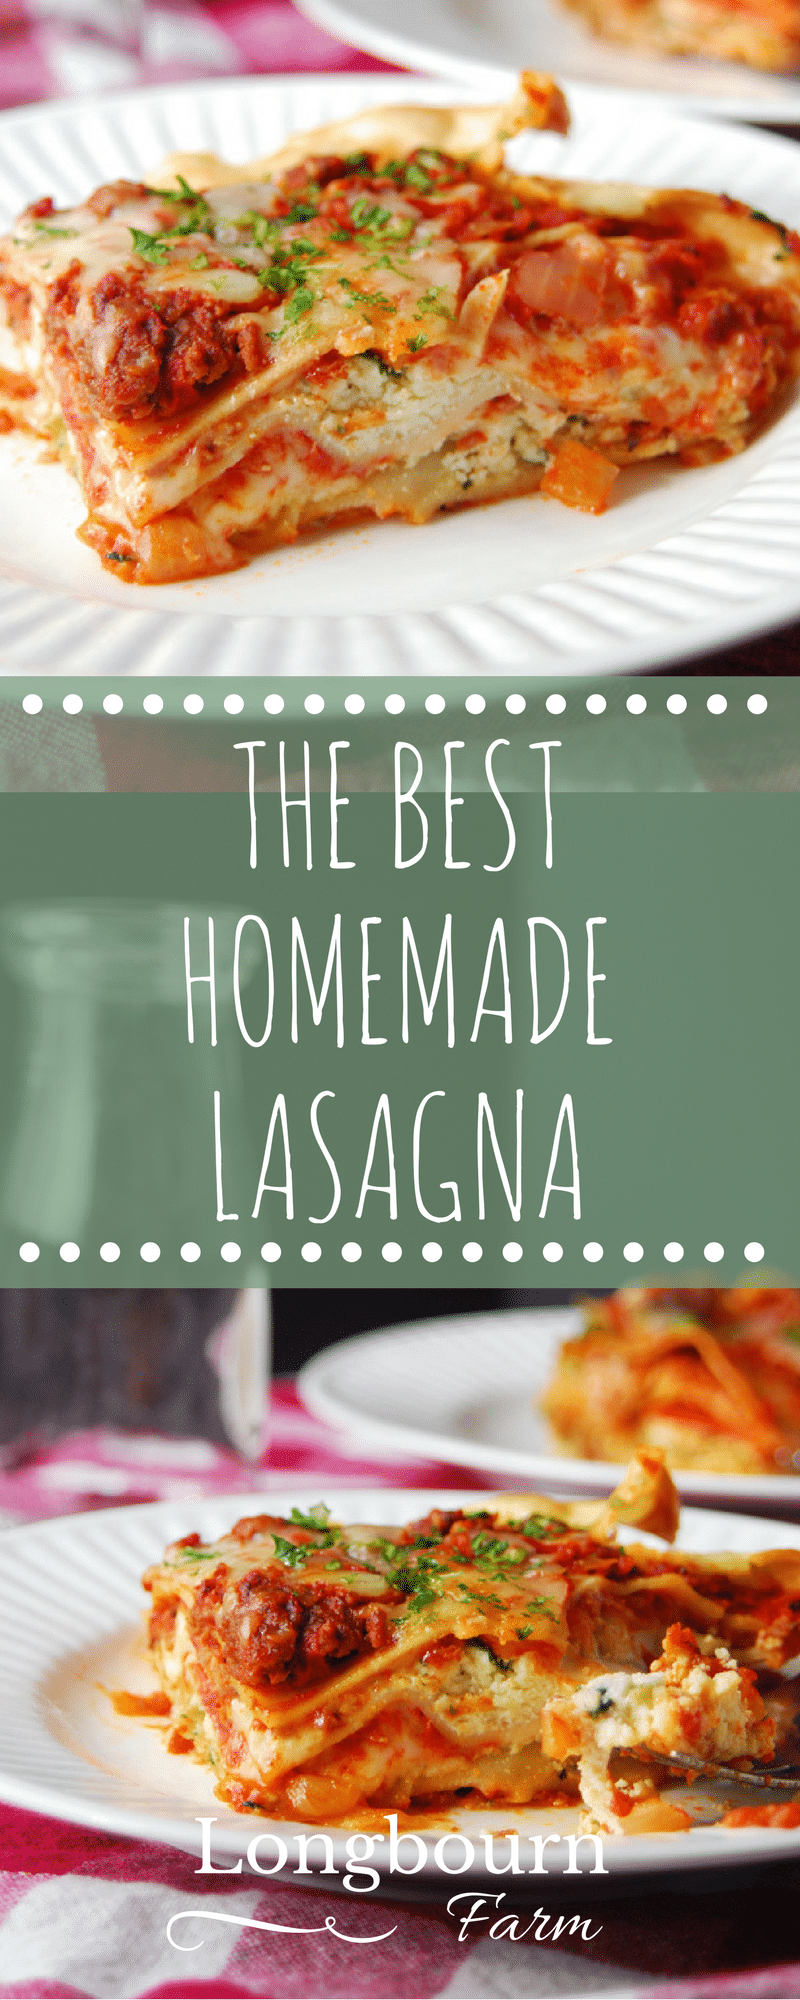 Don't be intimidated by making homemade lasagna! This recipe is easy to follow and tastes AMAZING! Use homemade lasagna noodles or some from the store.